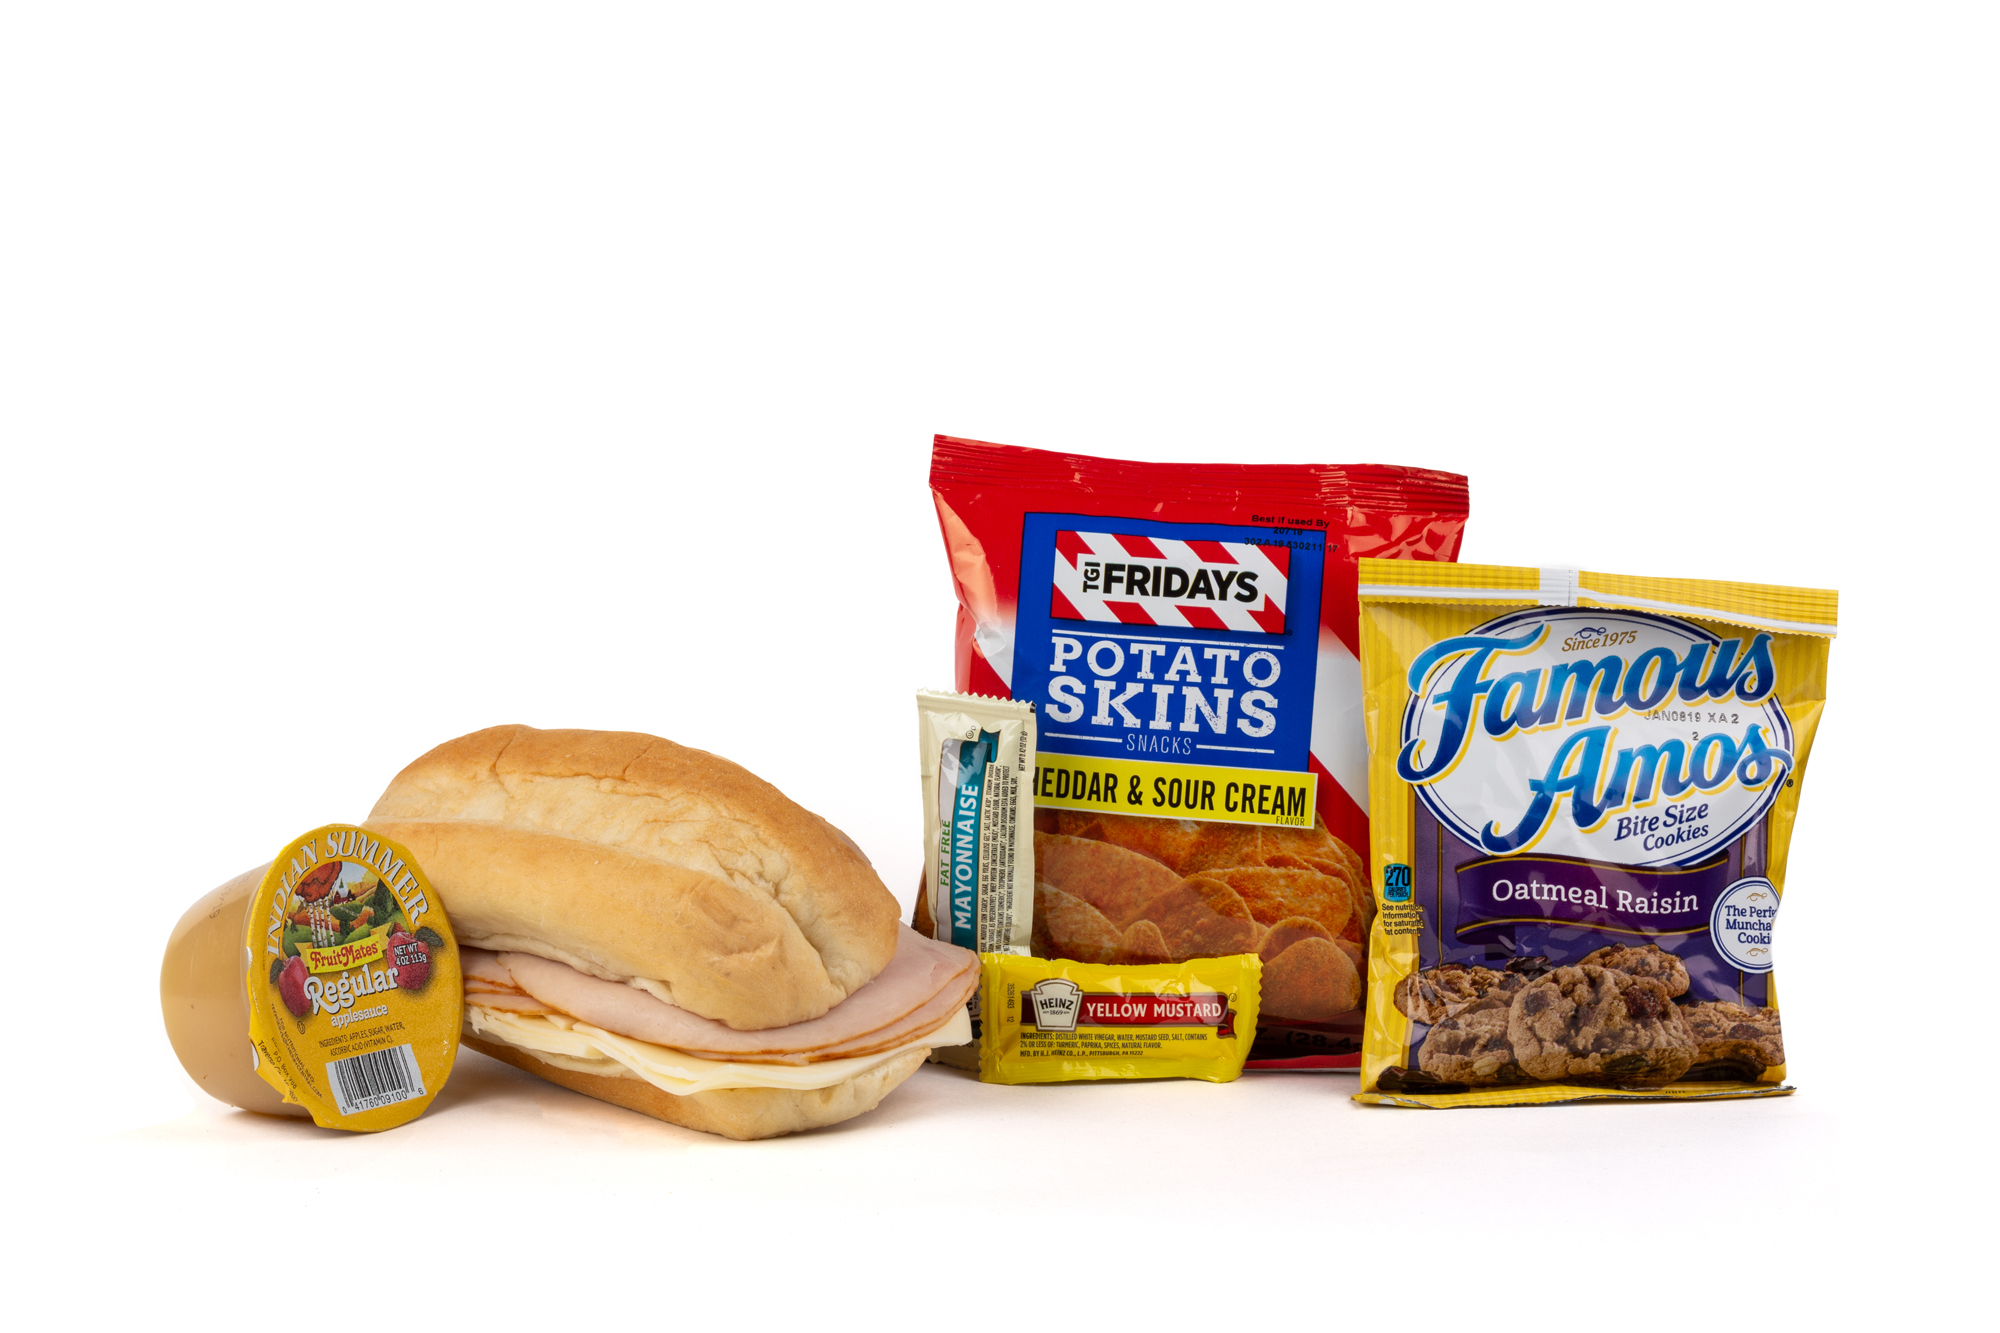 FK02ND - Turkey/Swiss Sandwich - Frozen NO DRINK NAPA 894001E619563  Sandwich - Turkey/ Swiss on Sub Bun Frozen Chip Potato TGIF Cheddar Sour Cream Applesauce Original Cookie Oatmeal Raisin Famous Amos Mayonnaise Packet Fatfree Dressing Mustard Packet Candy Mint Starlight Spearmint